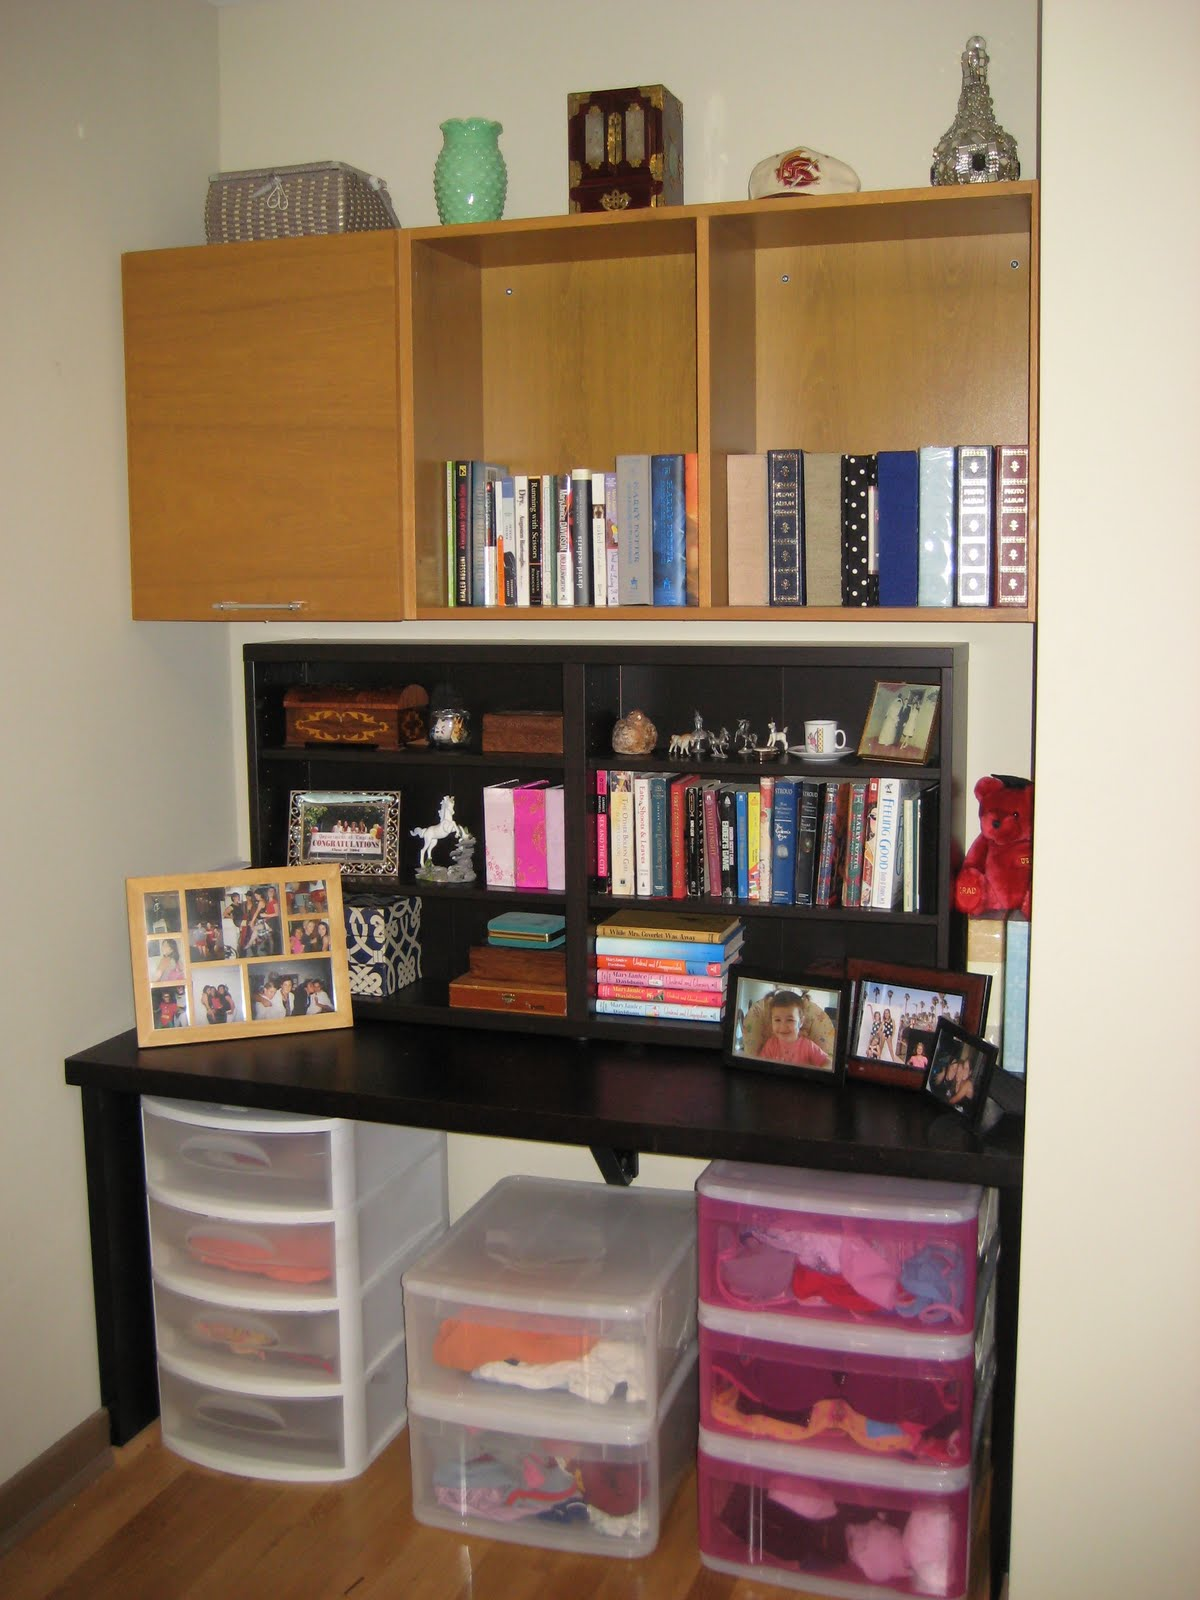 My Bedroom Shelfy Area, Post Zenning :